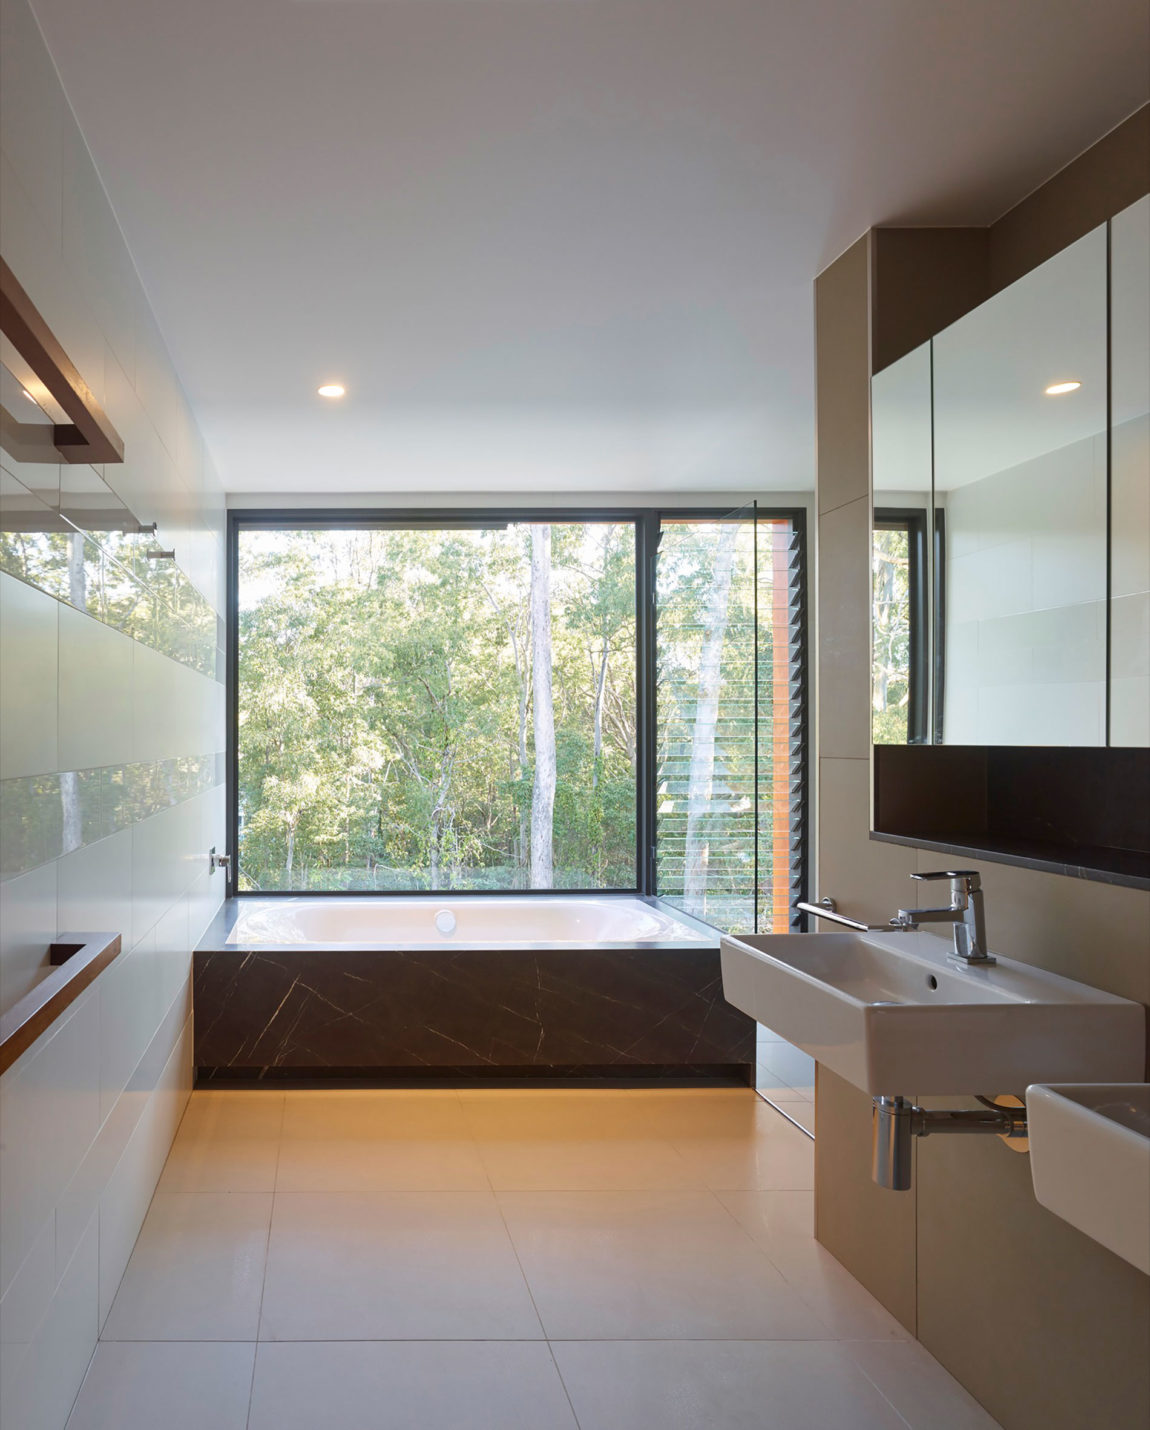 Fifth Avenue by O'Neill Architecture (12)